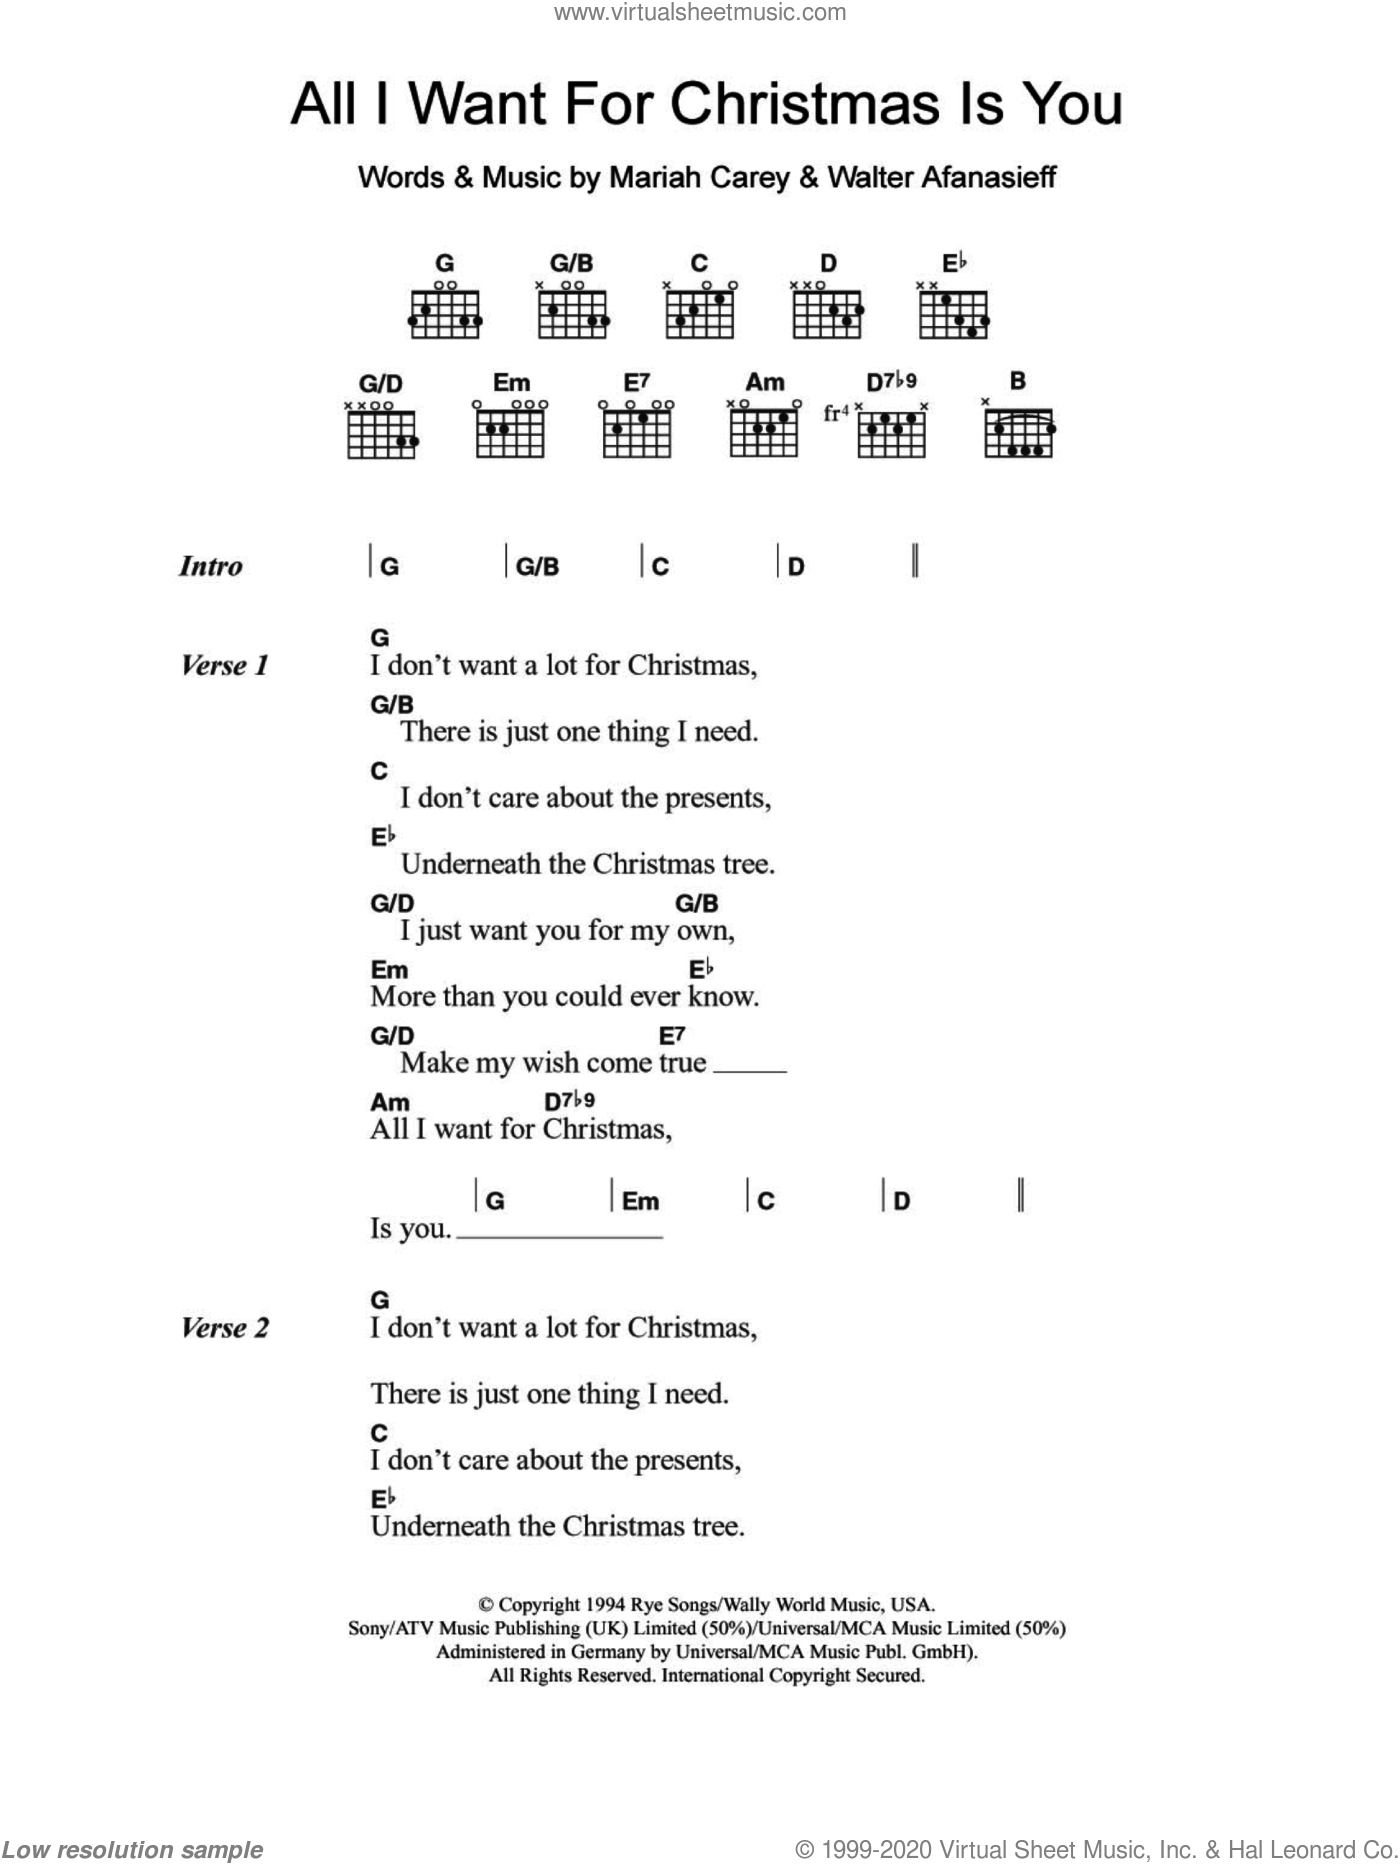 All I Want For Christmas Is You sheet music for guitar (chords) by Walter Afanasieff and Mariah Carey. Score Image Preview.